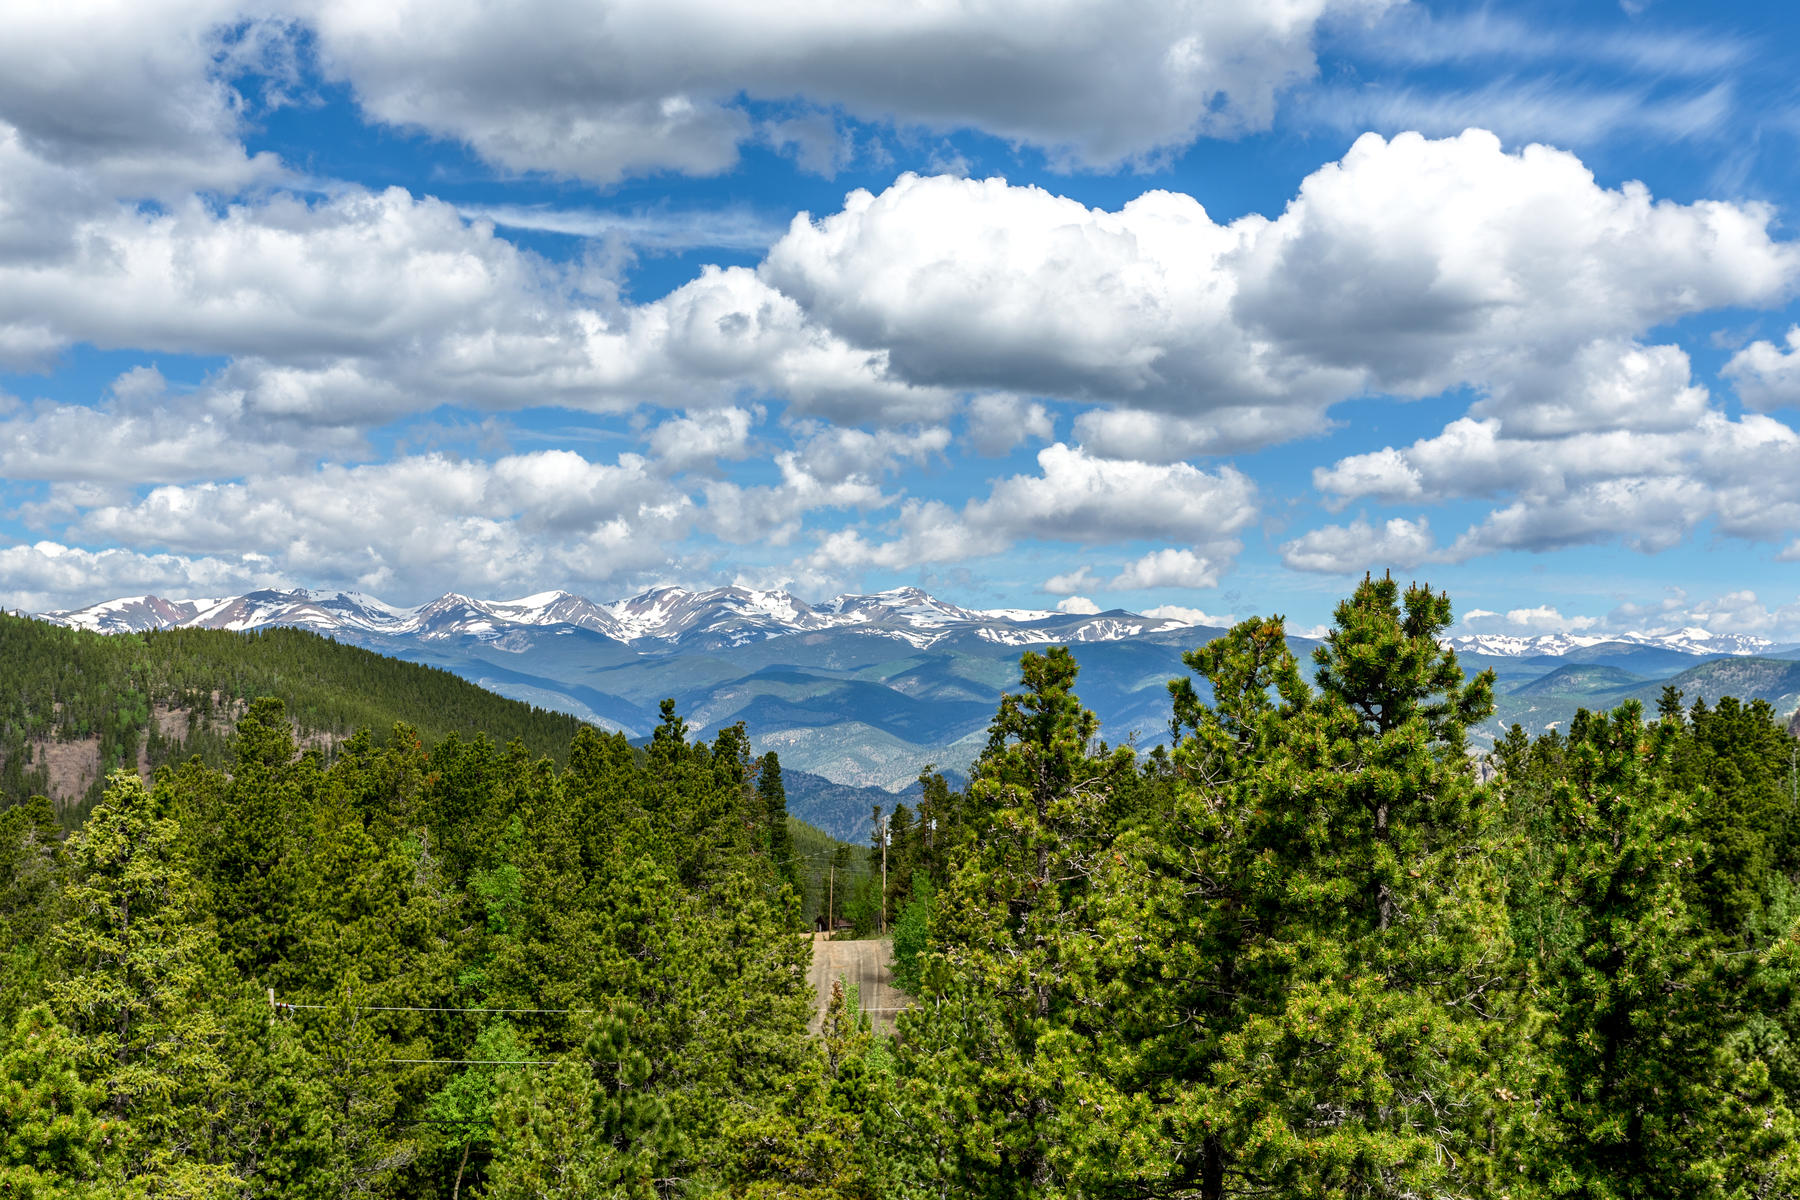 Single Family Homes for Sale at Escape the city to your quiet, tranquil, mountain home! 199 Pine Drive Idaho Springs, Colorado 80452 United States